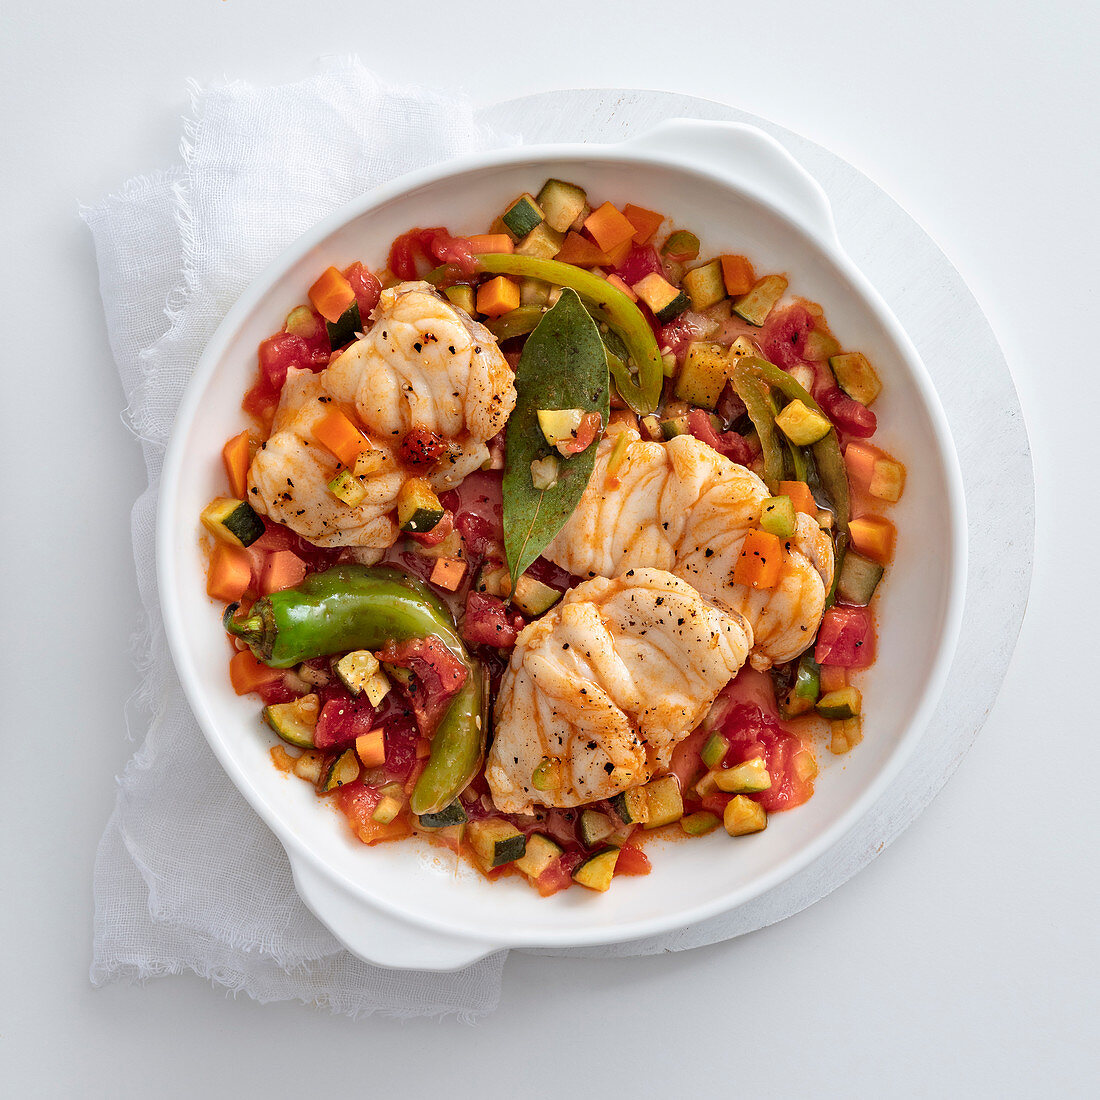 Monkfish with bell peppers, zucchini and turmeric